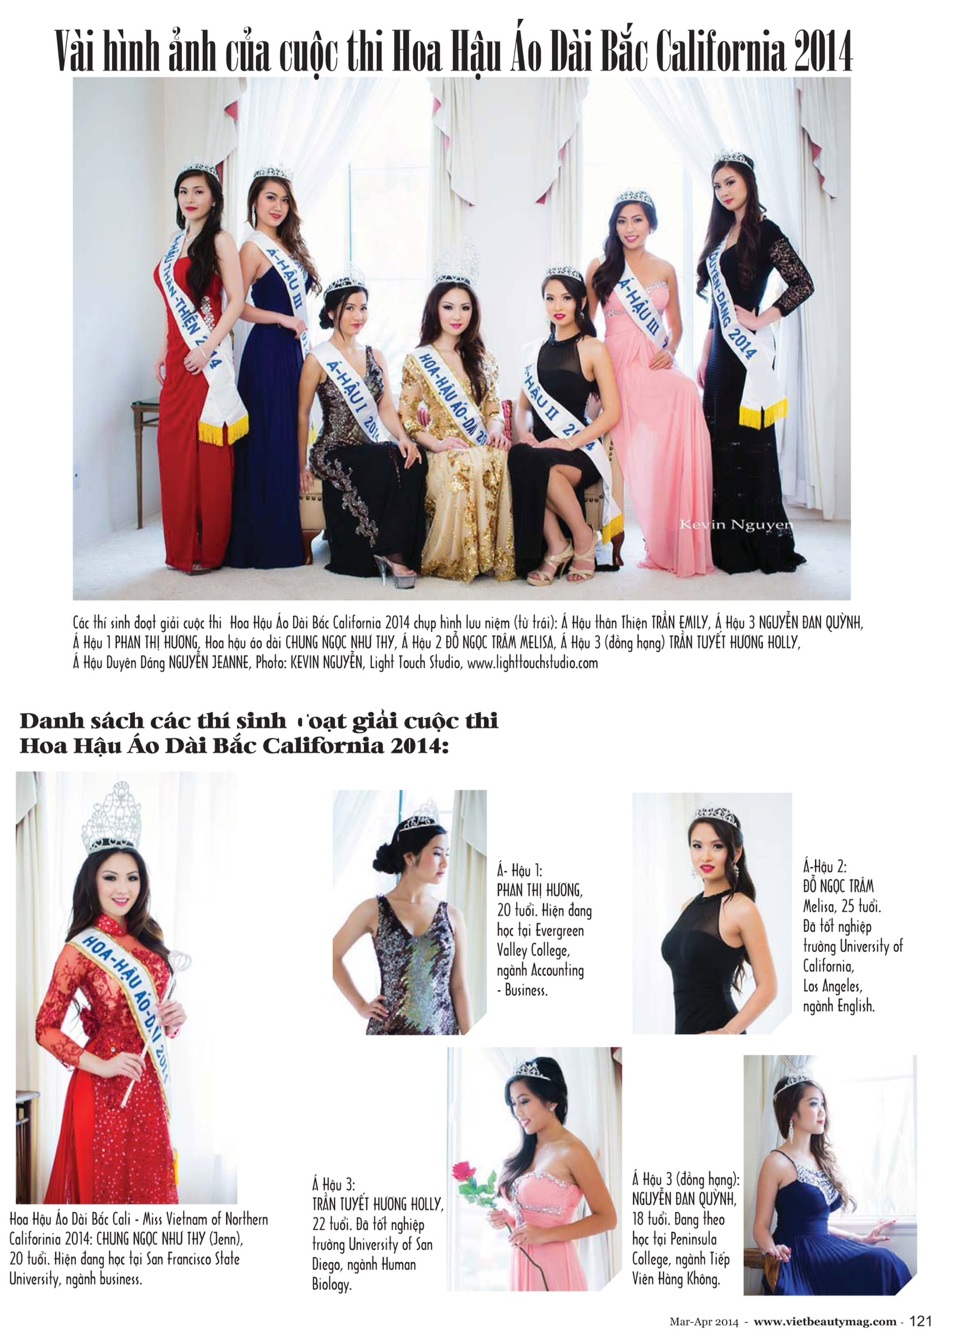 Viet Beauty Magazine - Volume 10 Issue 2 - Image 02